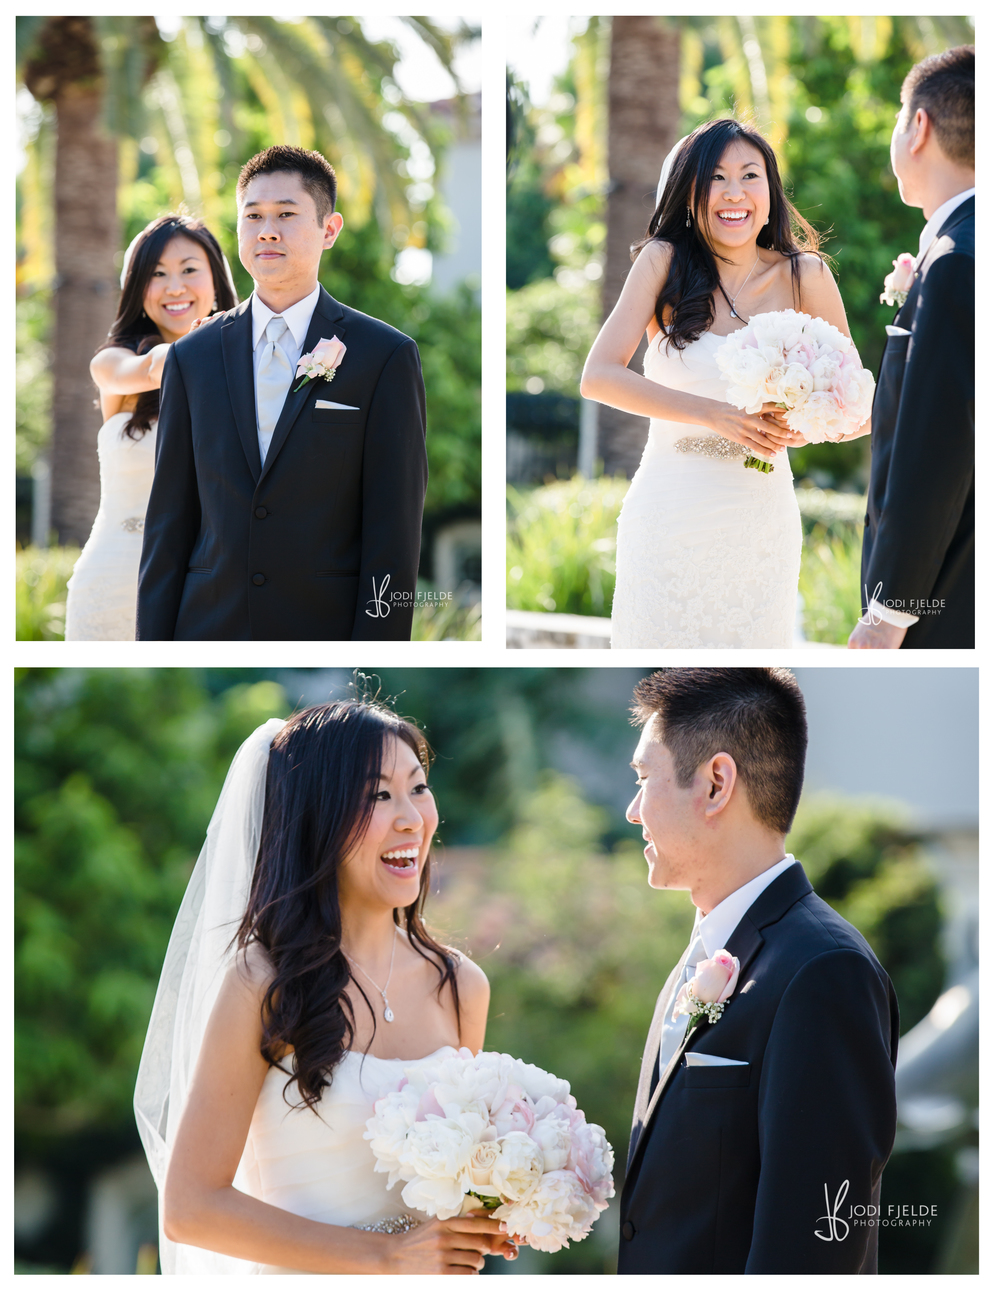 Lake_Pavilion_Wedding_West_Palm_Beach_Jodi_Fjelde_Photography_Betty_Alex_Sociaety_Of_Four _Arts_3.jpg